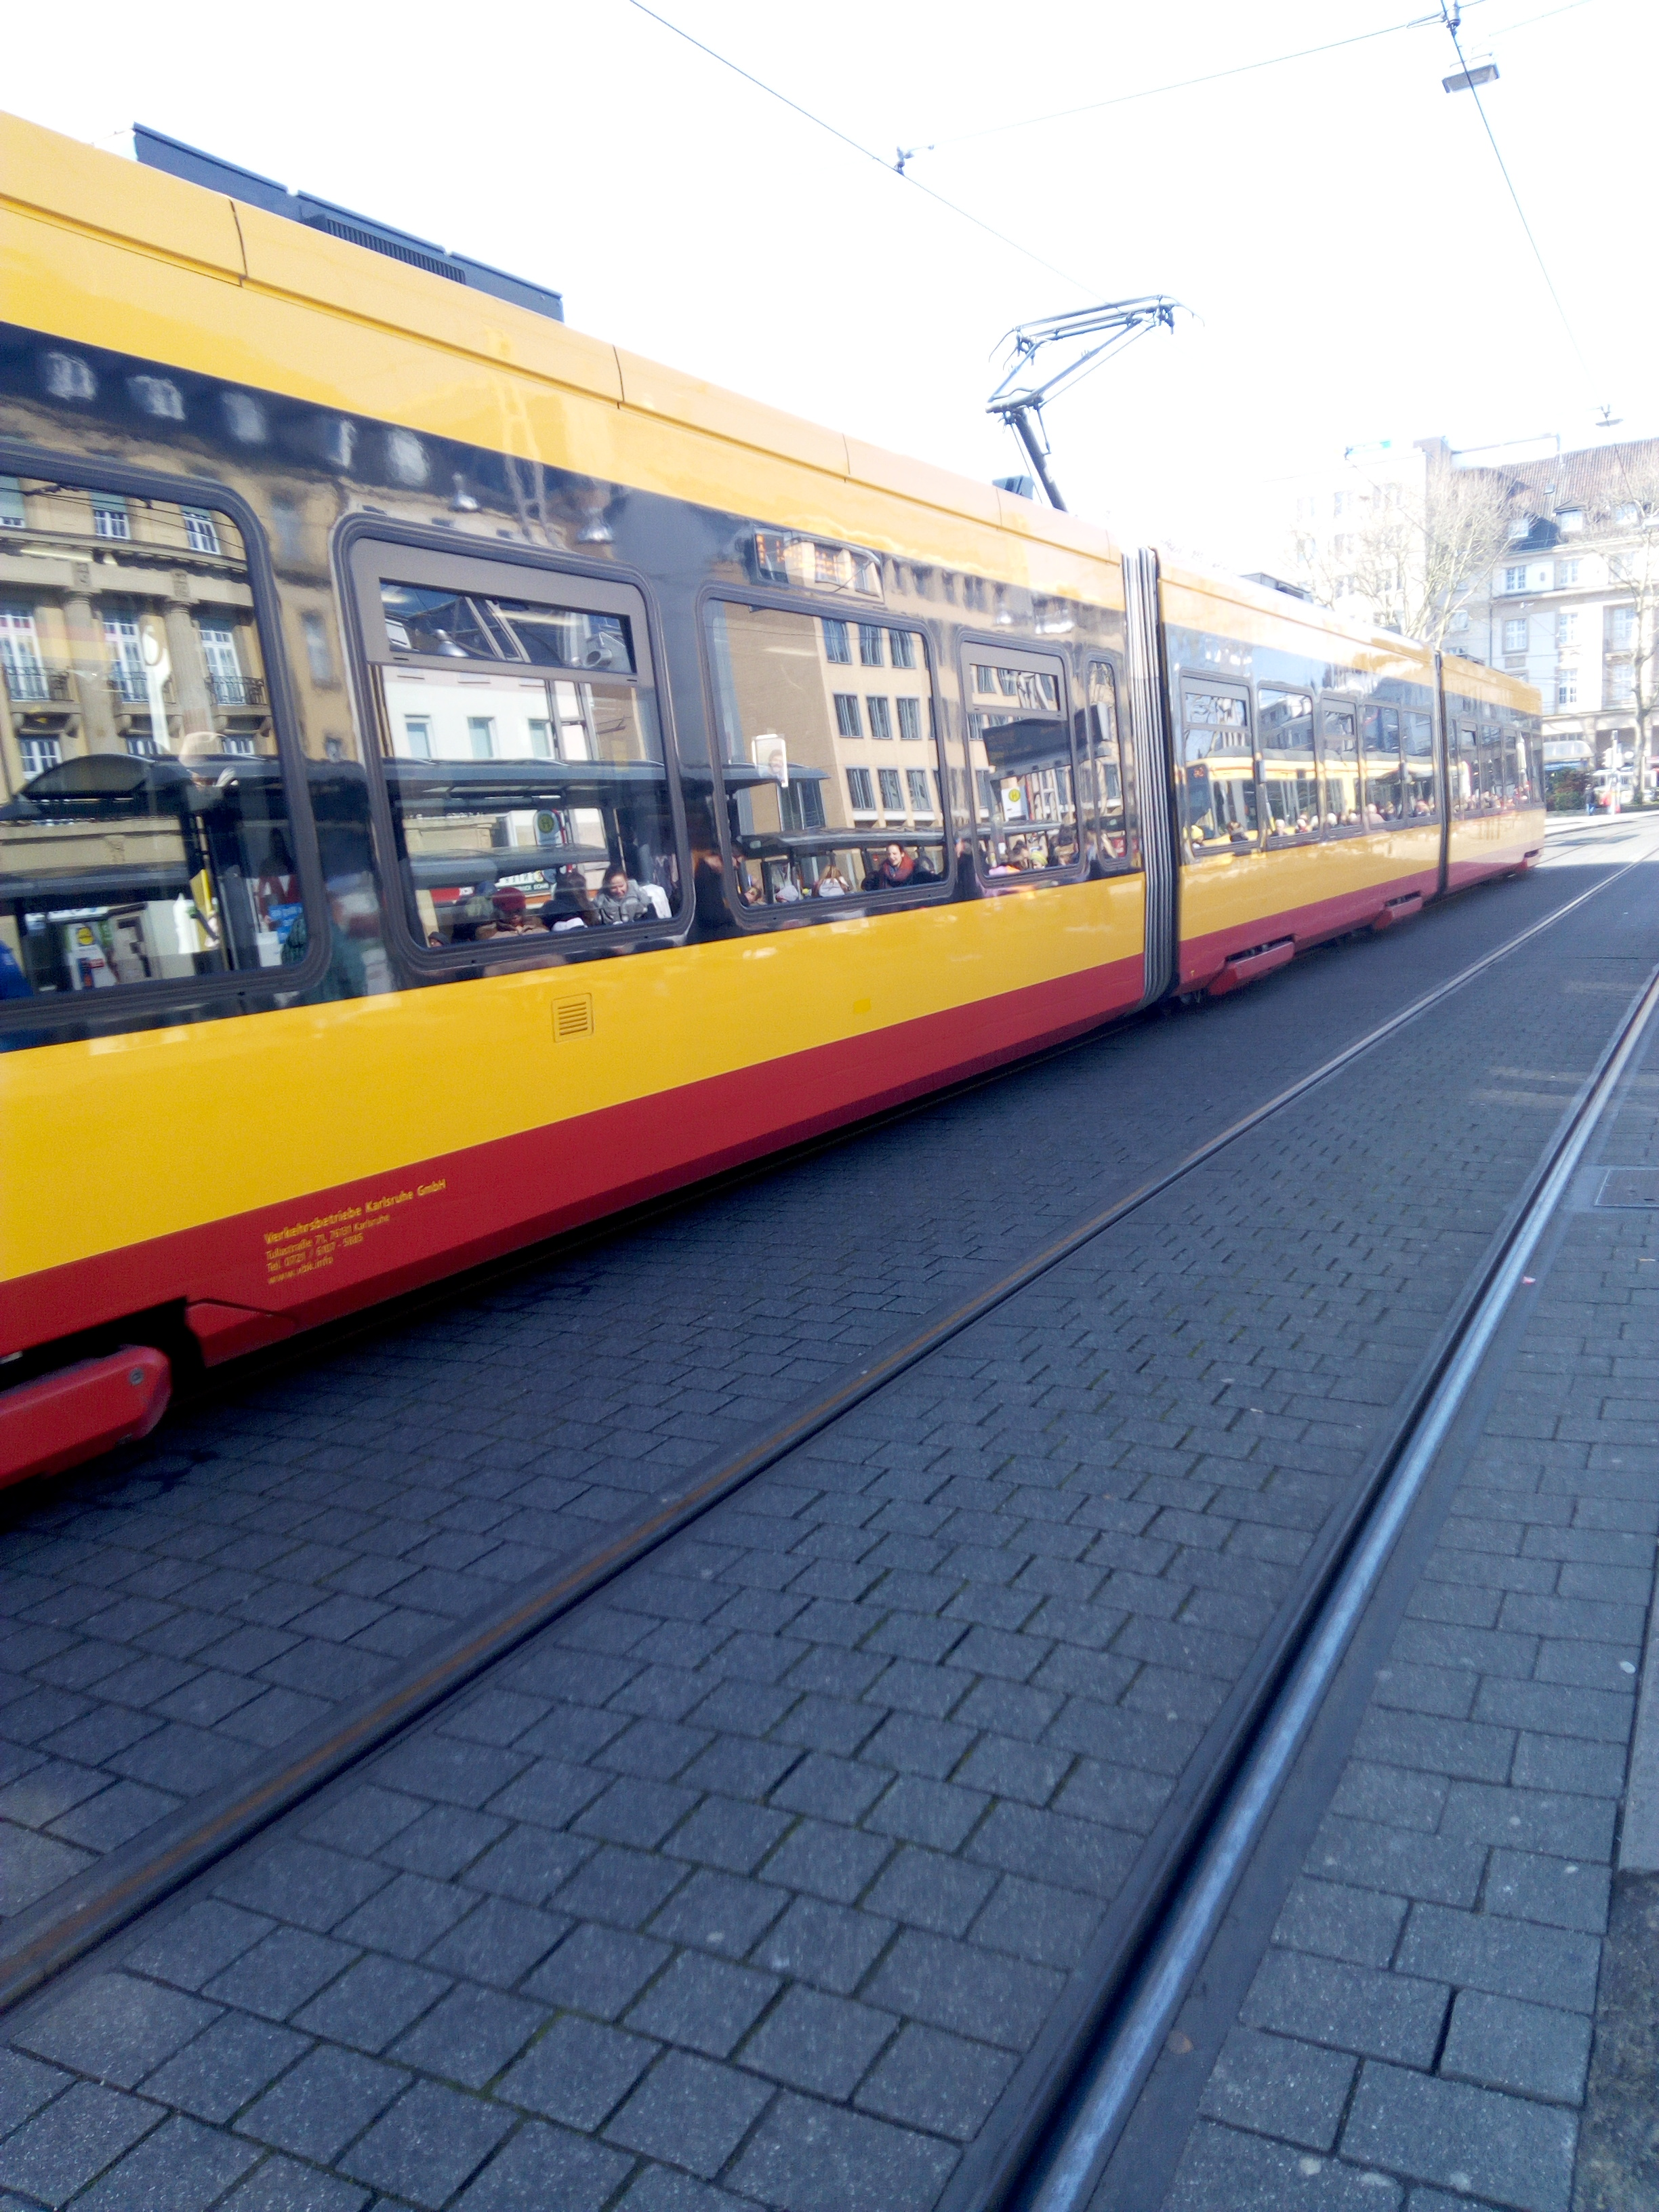 a tram image in Germany